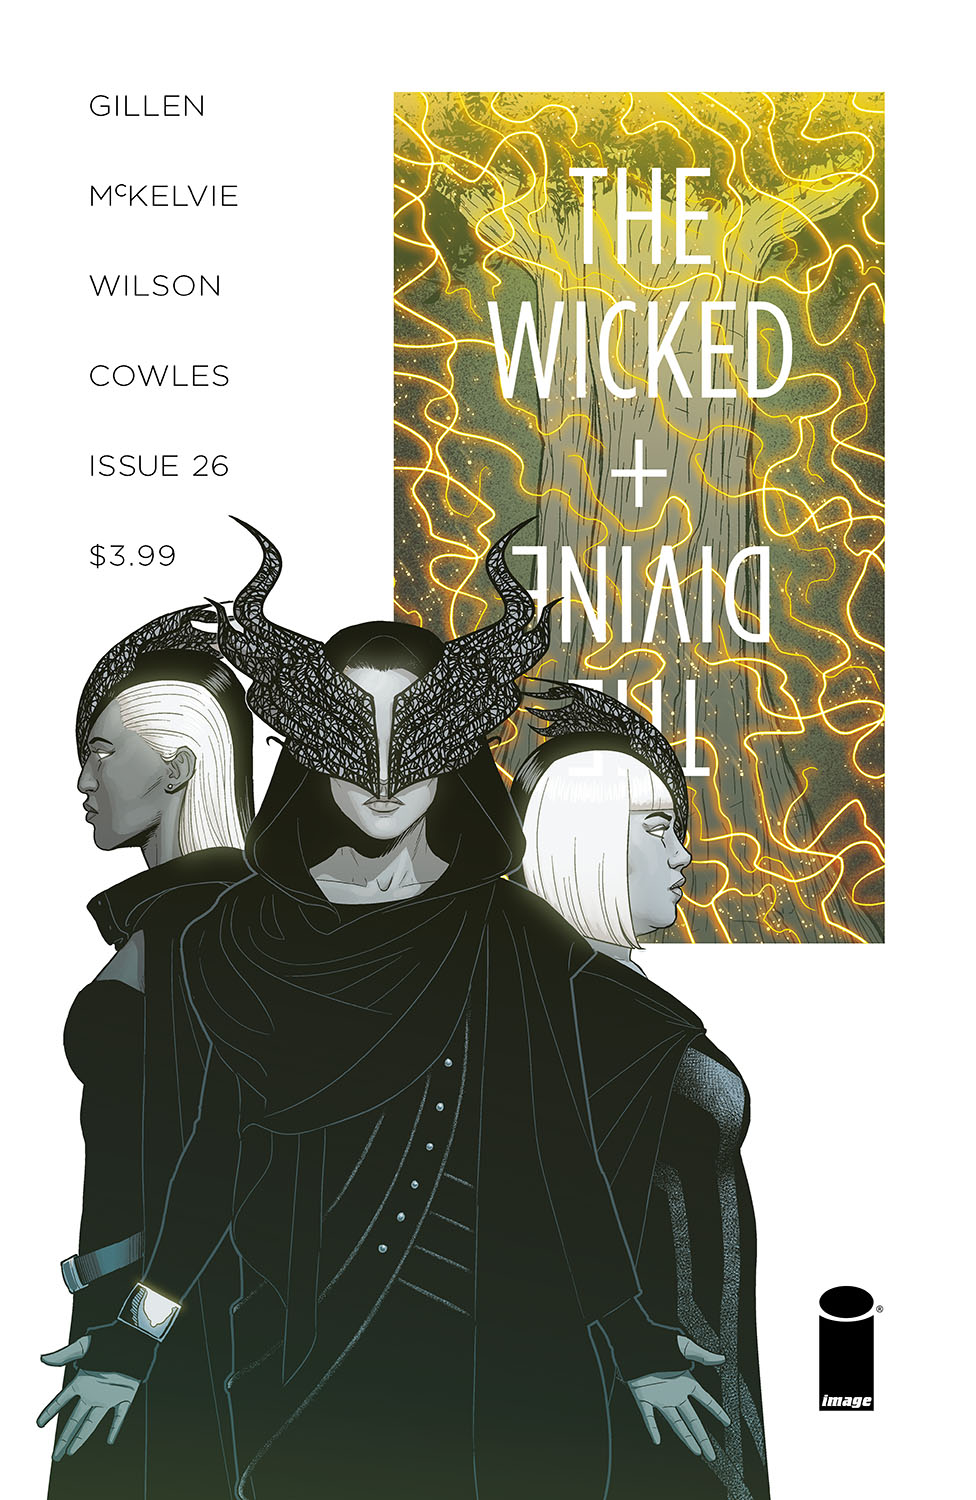 WICKED & DIVINE #26 CVR A MCKELVIE & WILSON (MR)